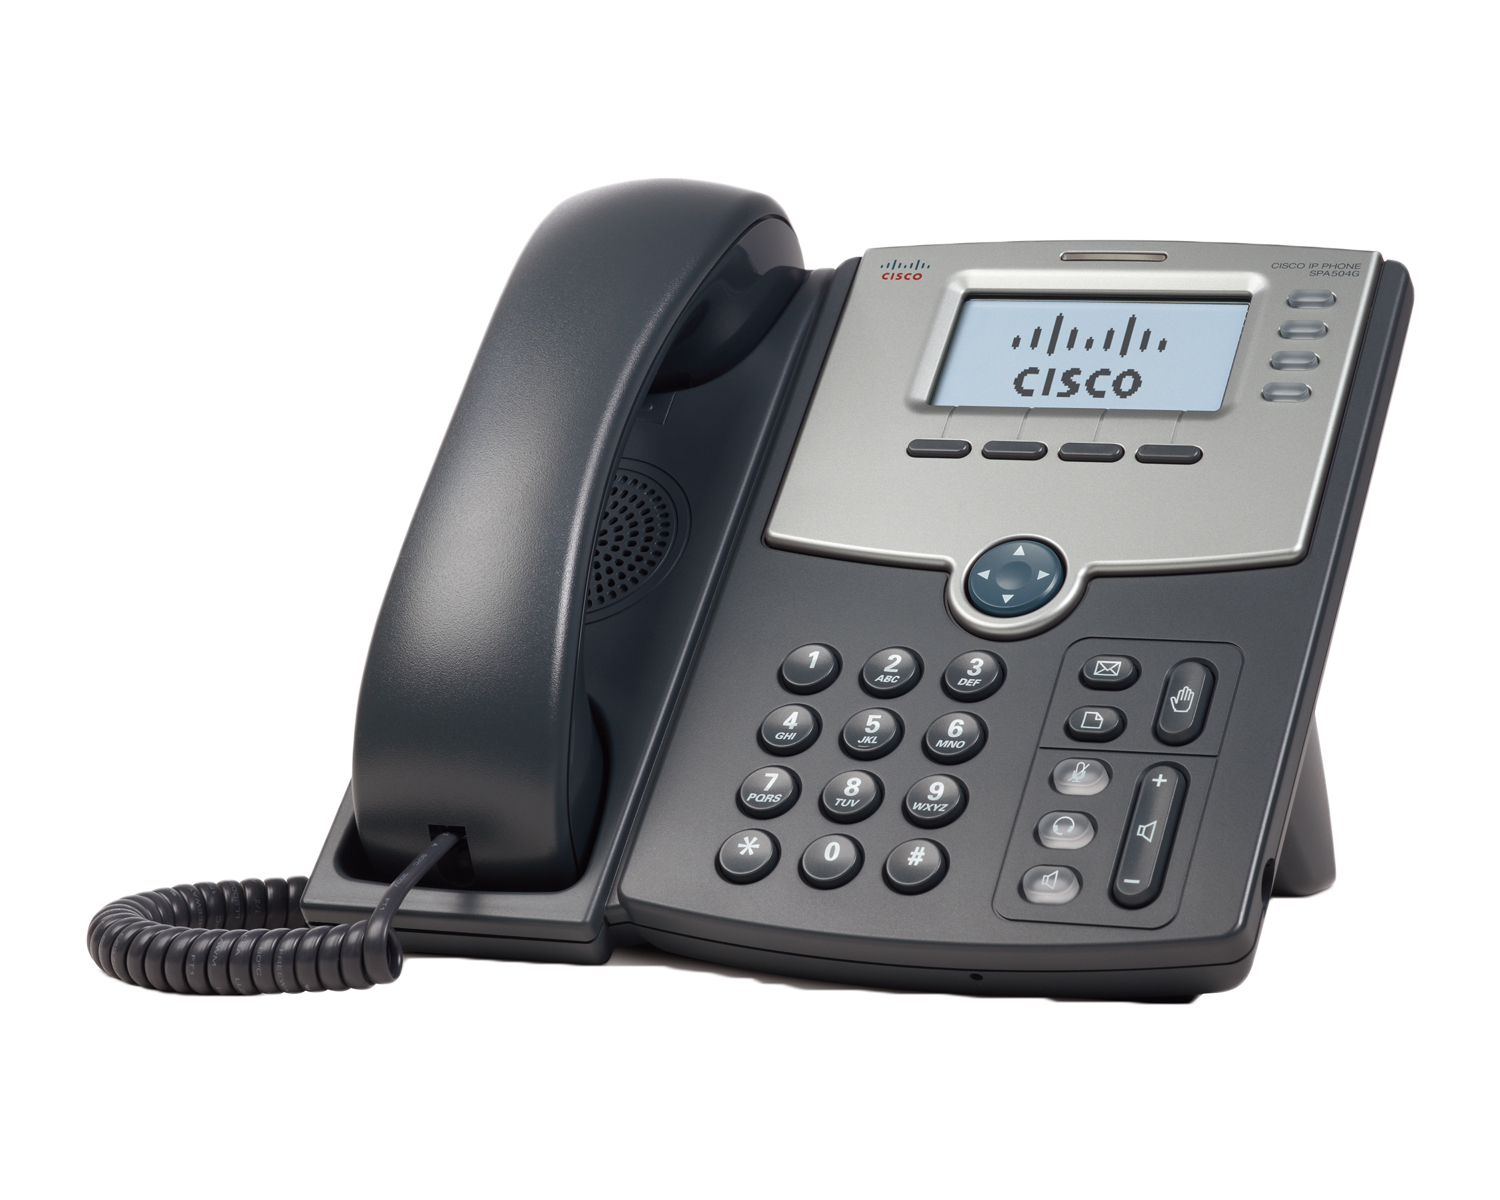 Telephone PNG HD Images Transparent Telephone HD Images.PNG Images.